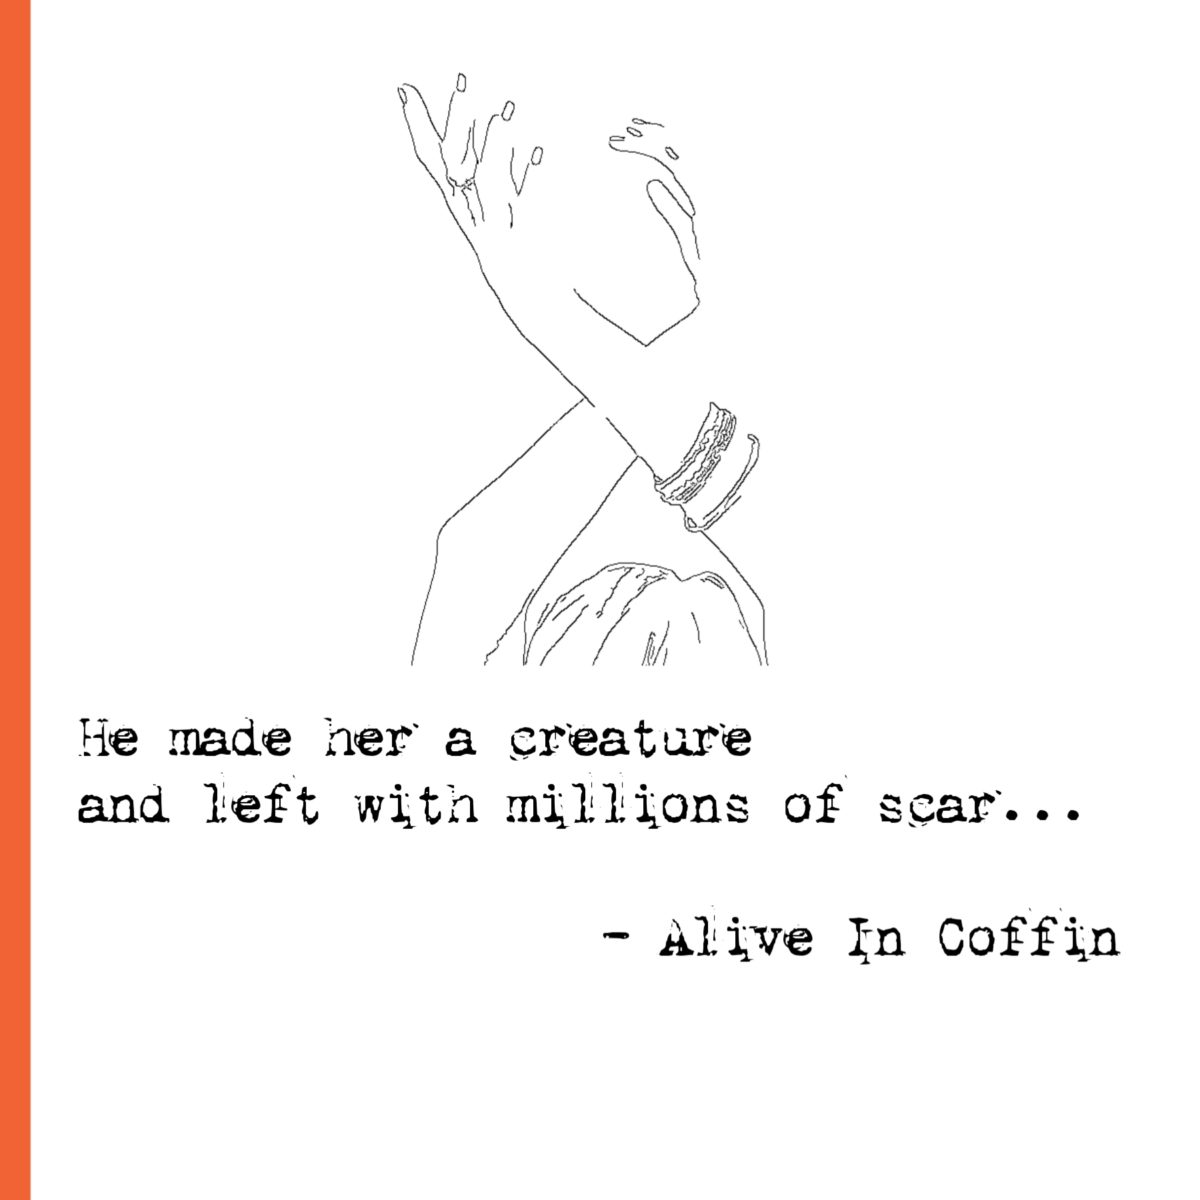 Gothic Poem about making her a creature and giving scars.